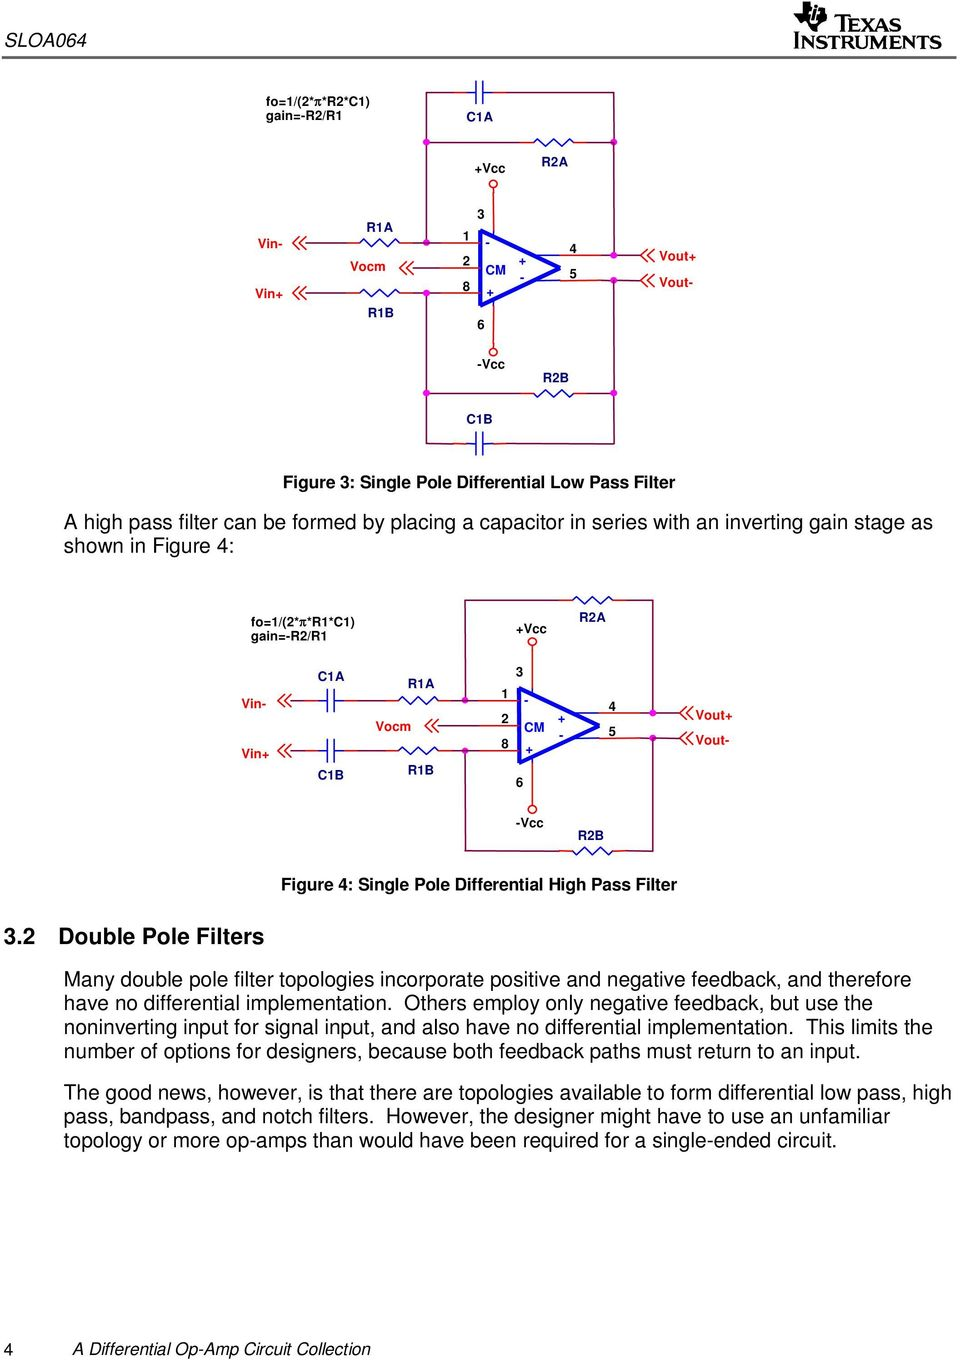 A Differential Op Amp Circuit Collection Pdf Simple H Bridge Motor Driver Electronic Opamp Double Pole Filters Many Filter Topologies Incorporate Positive And Negative Feedback Therefore